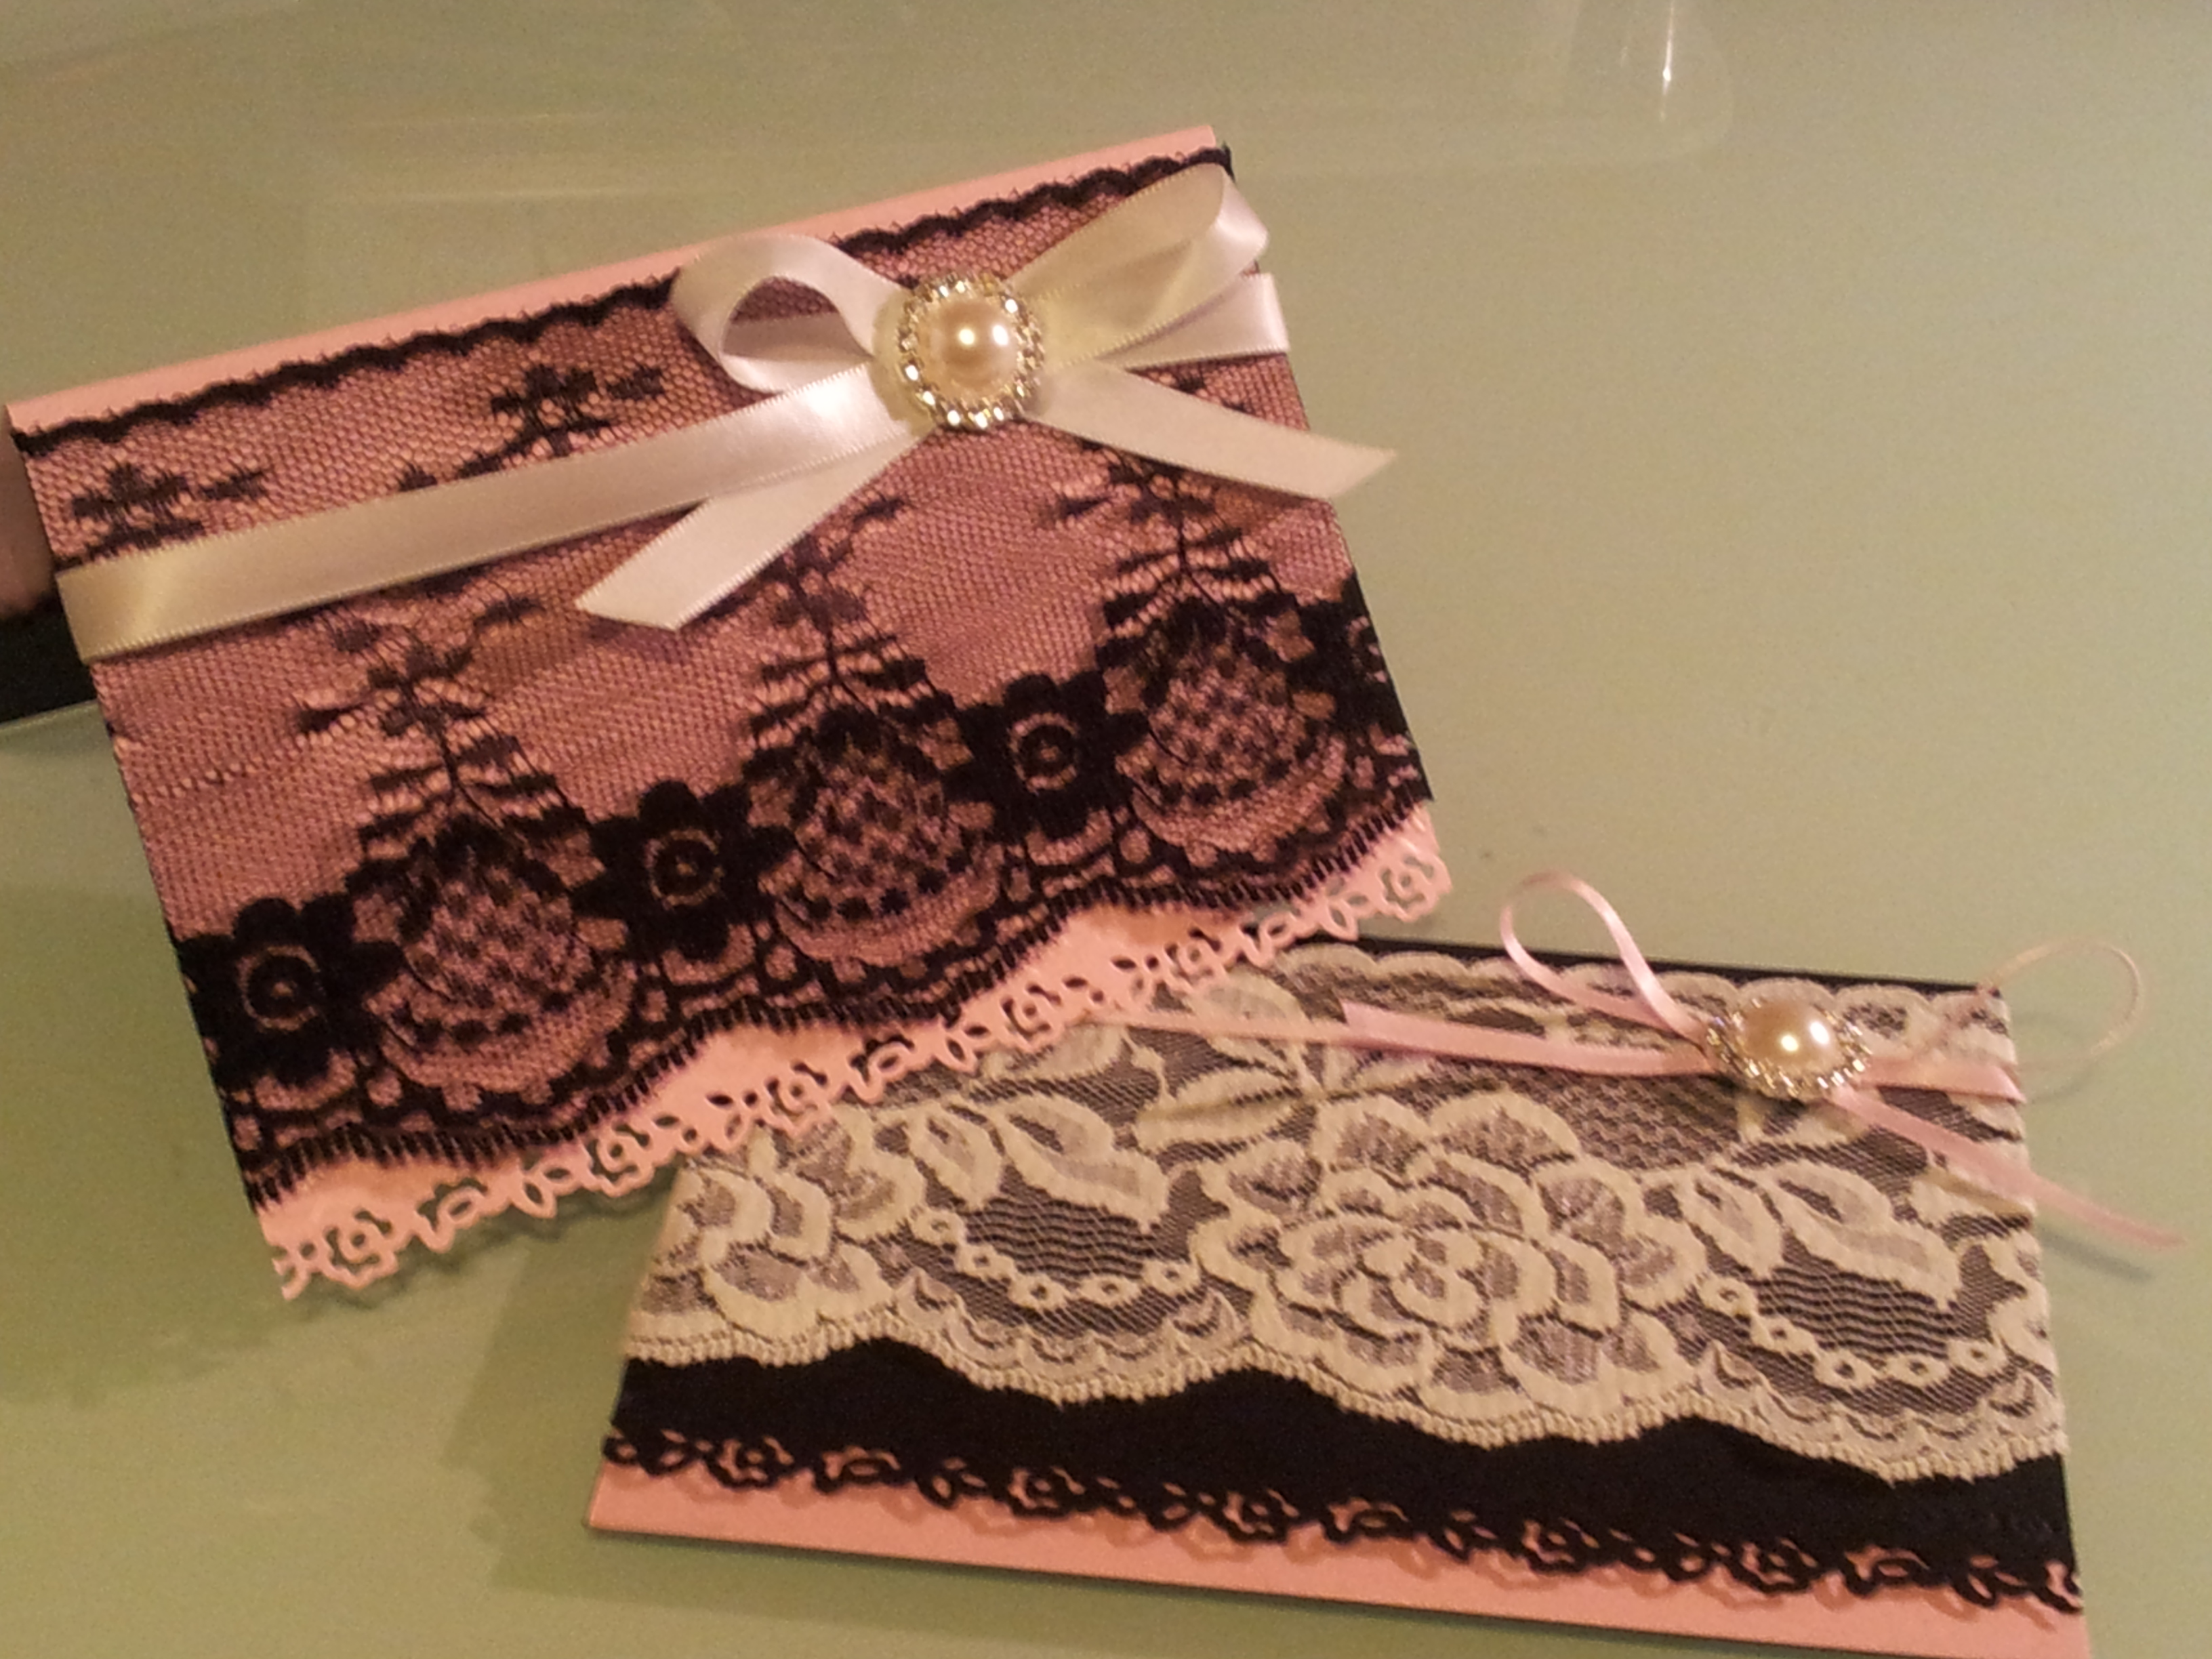 lace wedding invitations  Housewife Down Under